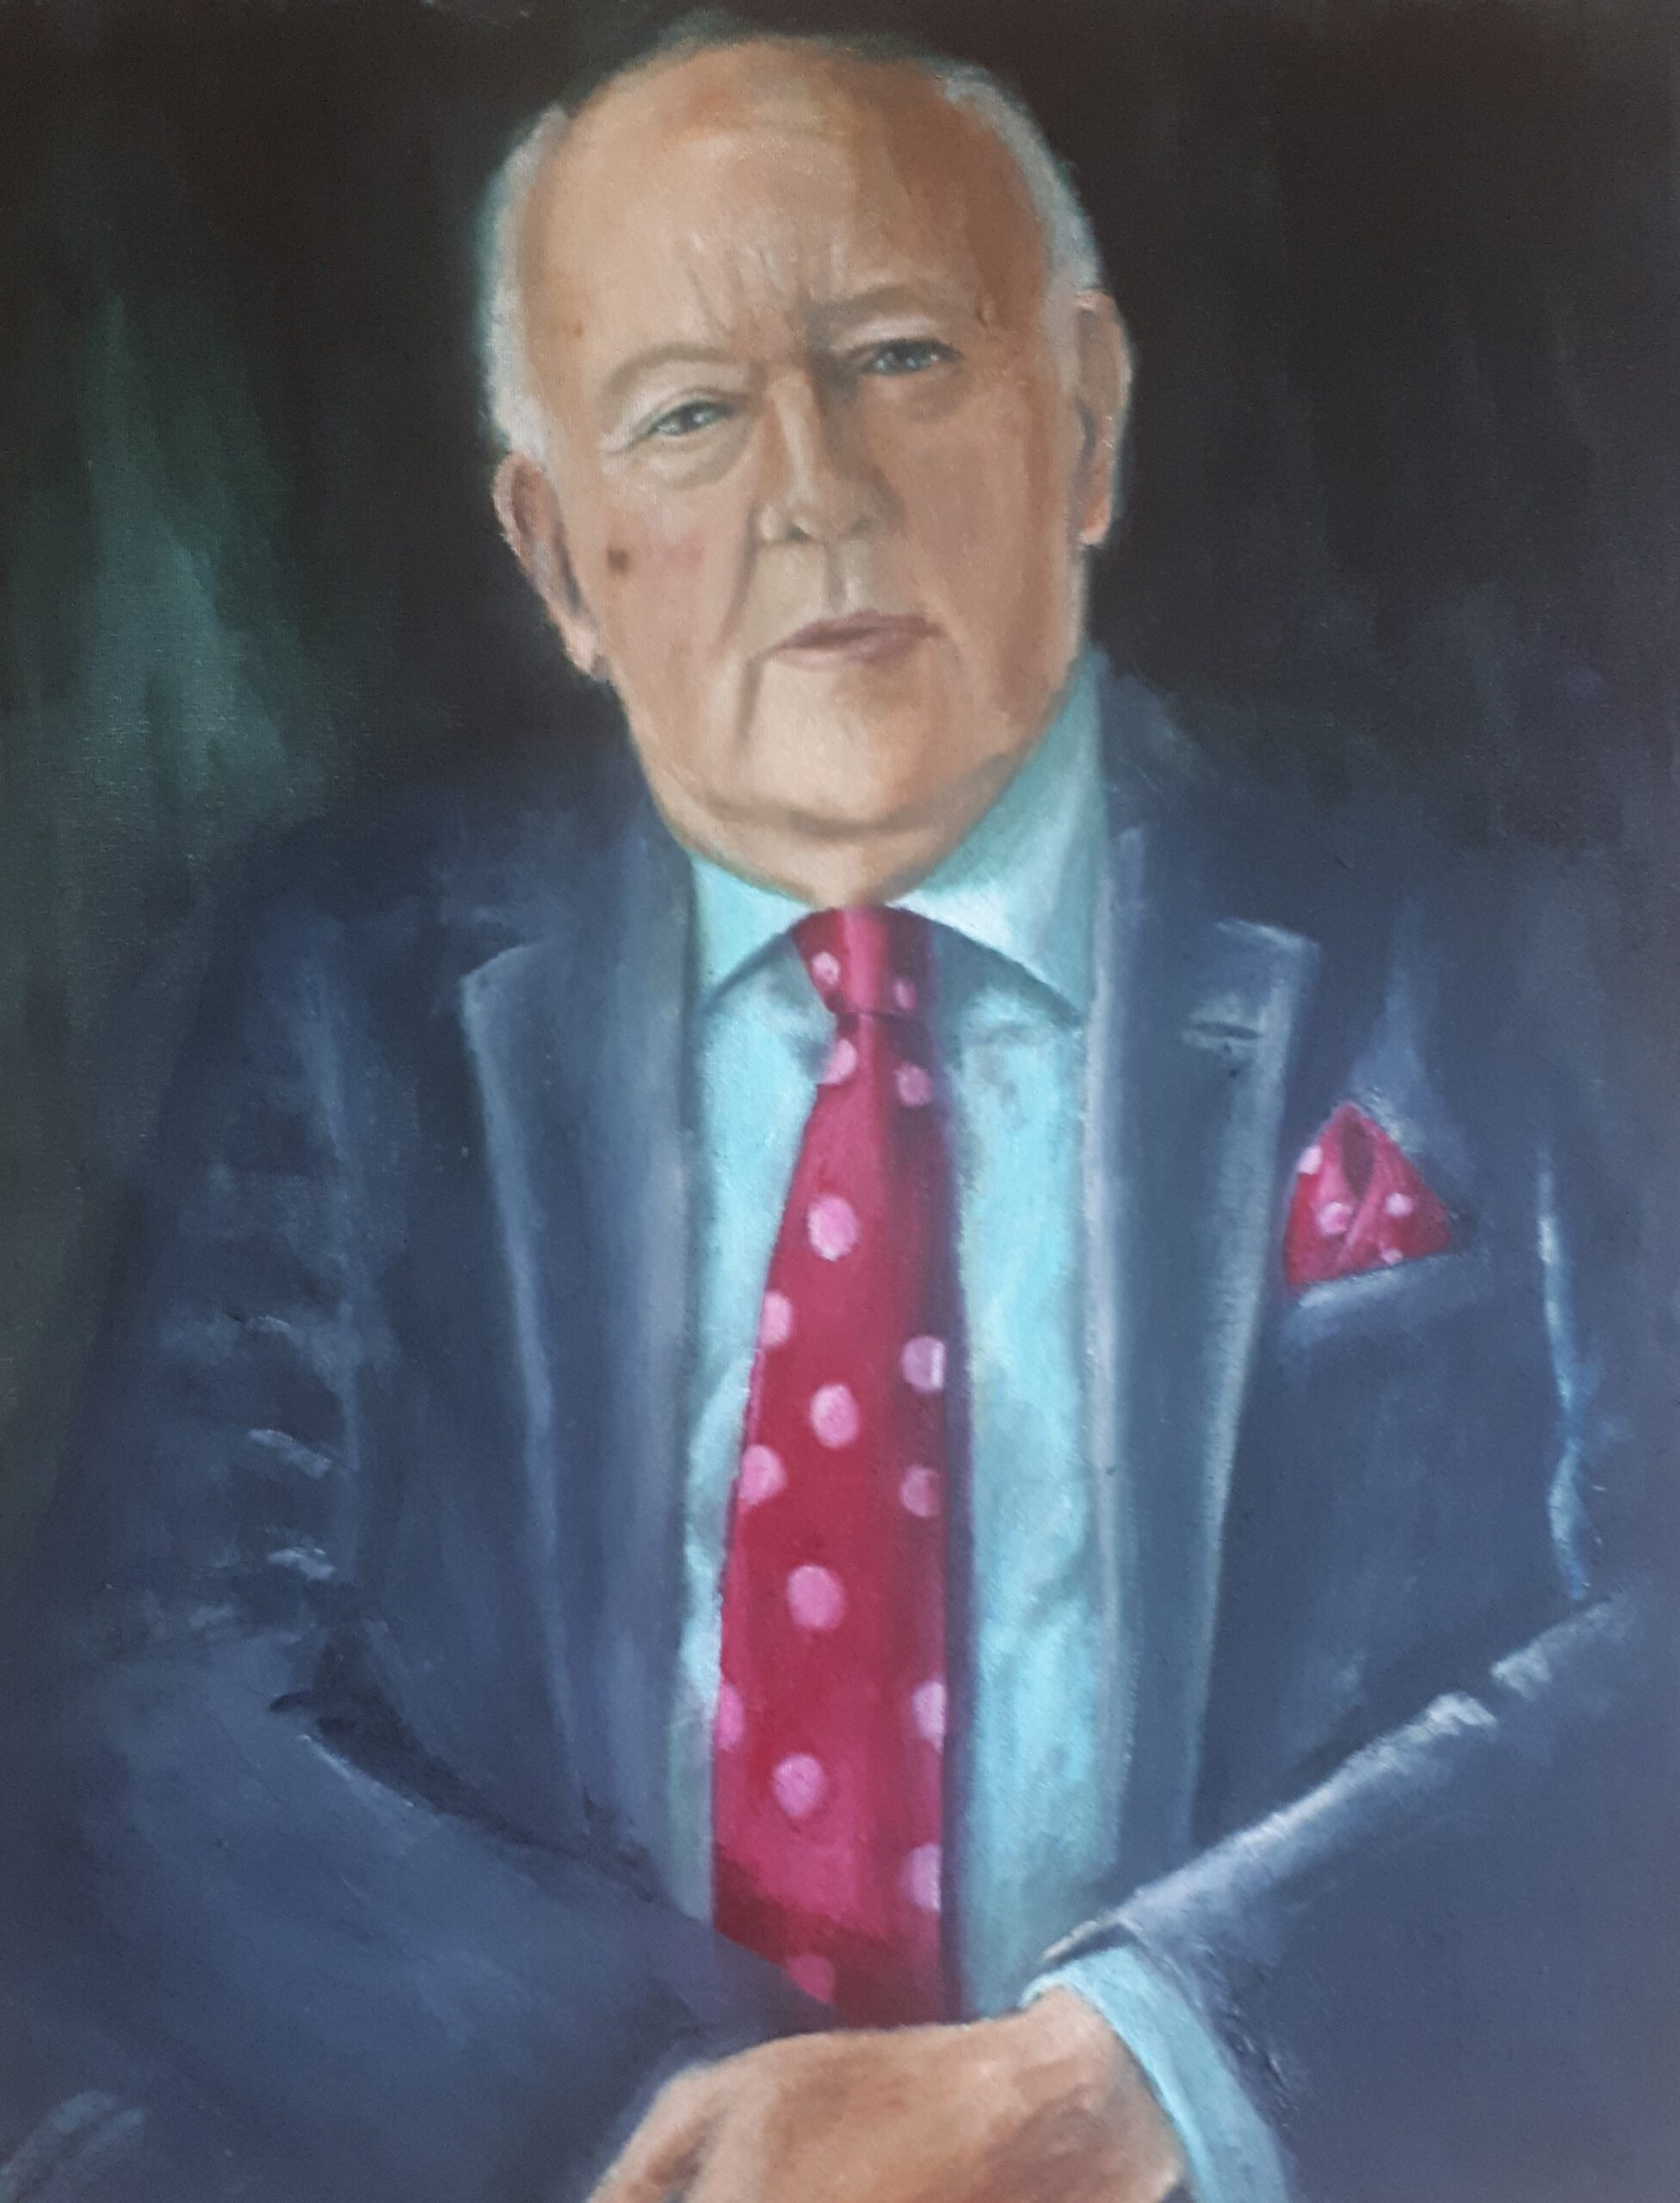 Oil Painting of a man in suit wearing a polka dot tie